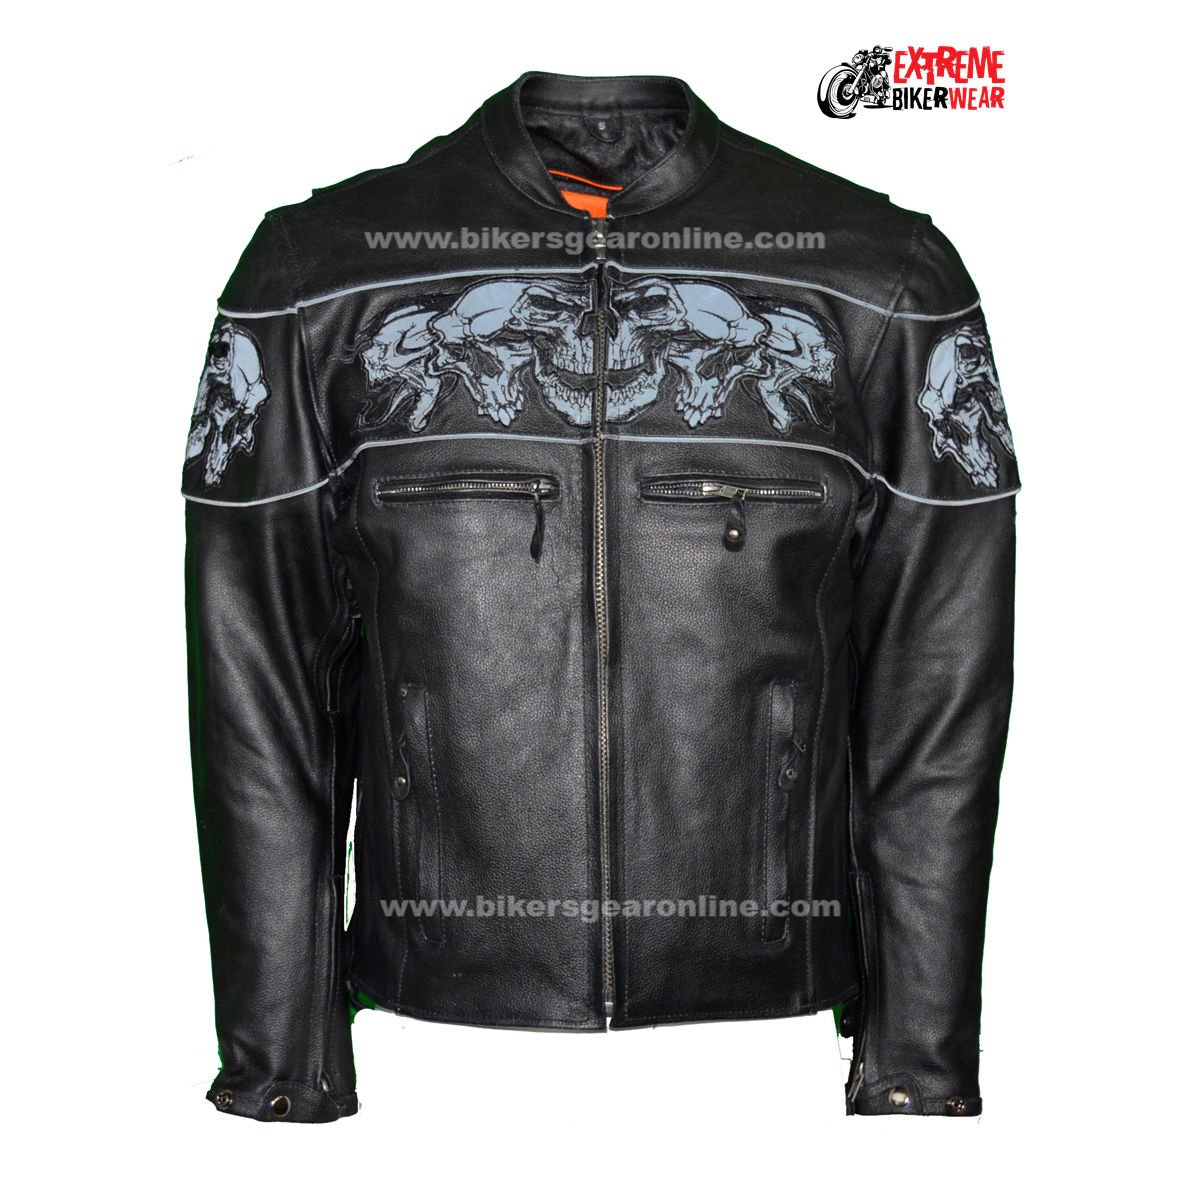 Dream Men's Motorcycle Riding Blk Reflective skull leather jacket Big sizes upto 10xl (XL Regular)